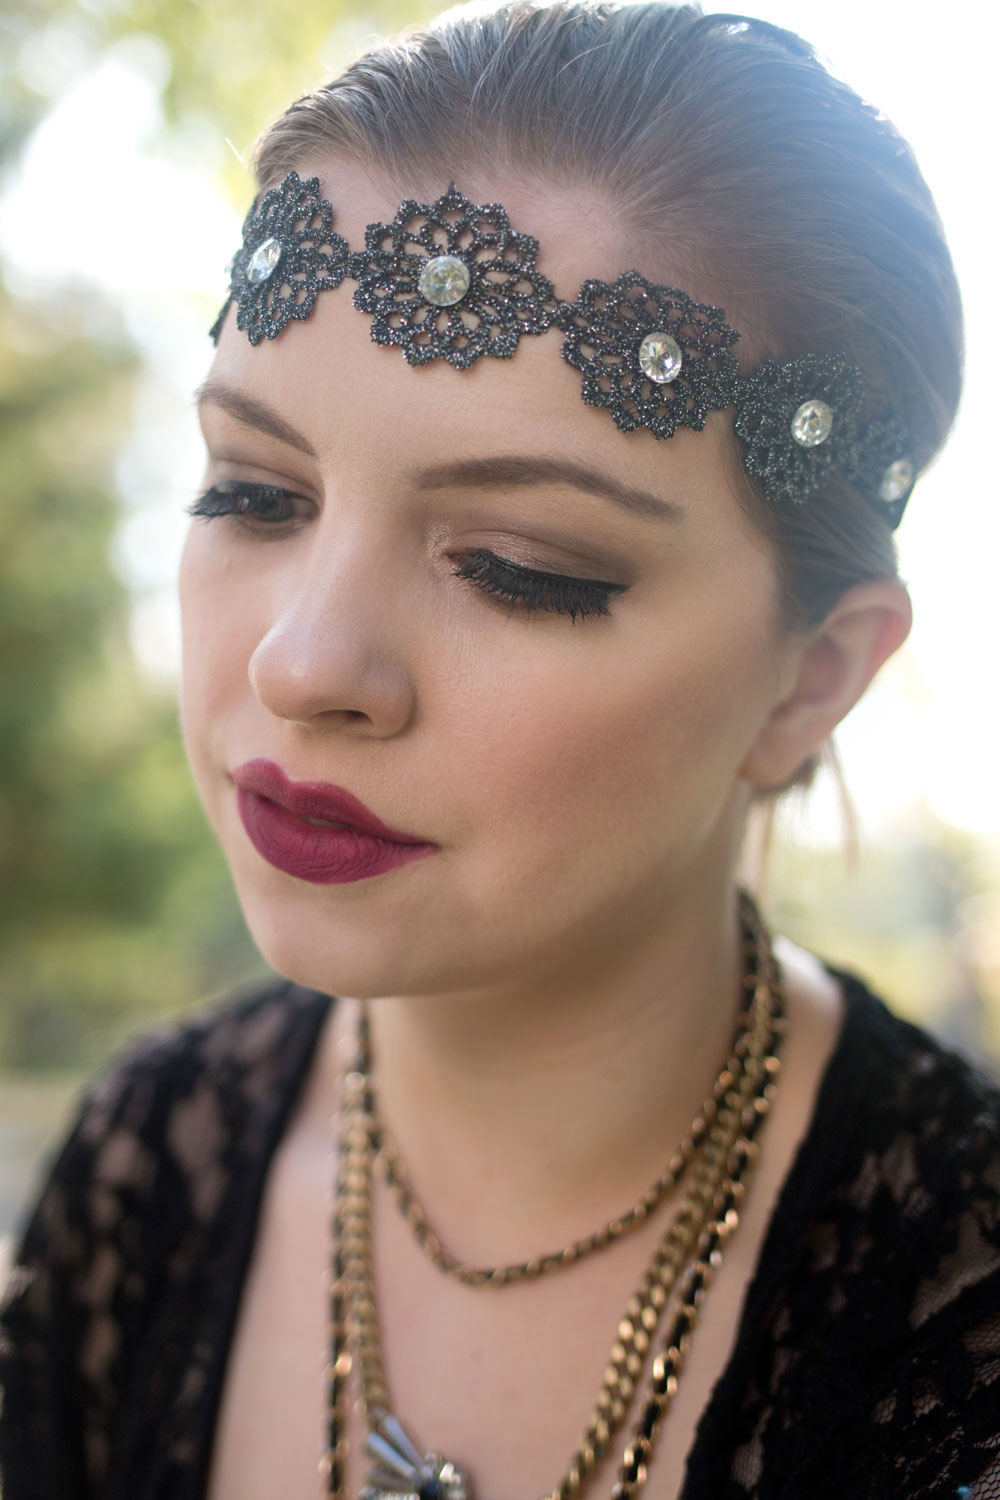 Flapper / Gibson Girl Halloween Costume & Makeup Look // hellorigby seattle fashion blog